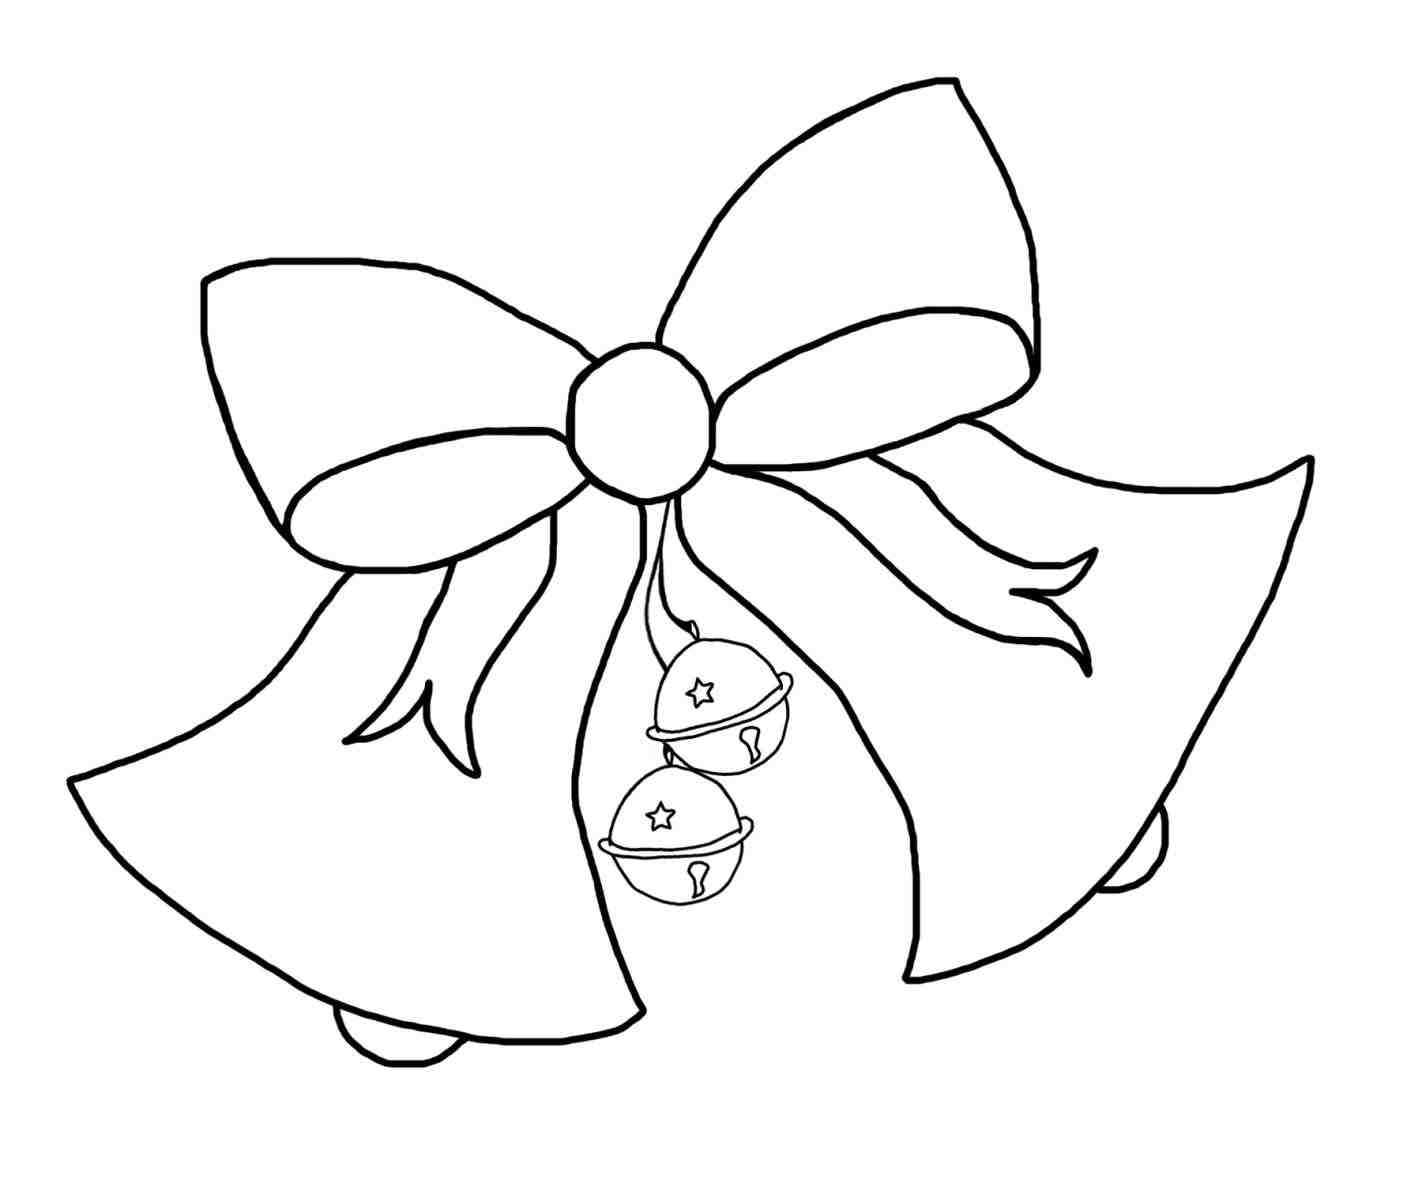 Christmas Bell Coloring Page Printable With Bells Drawing Free